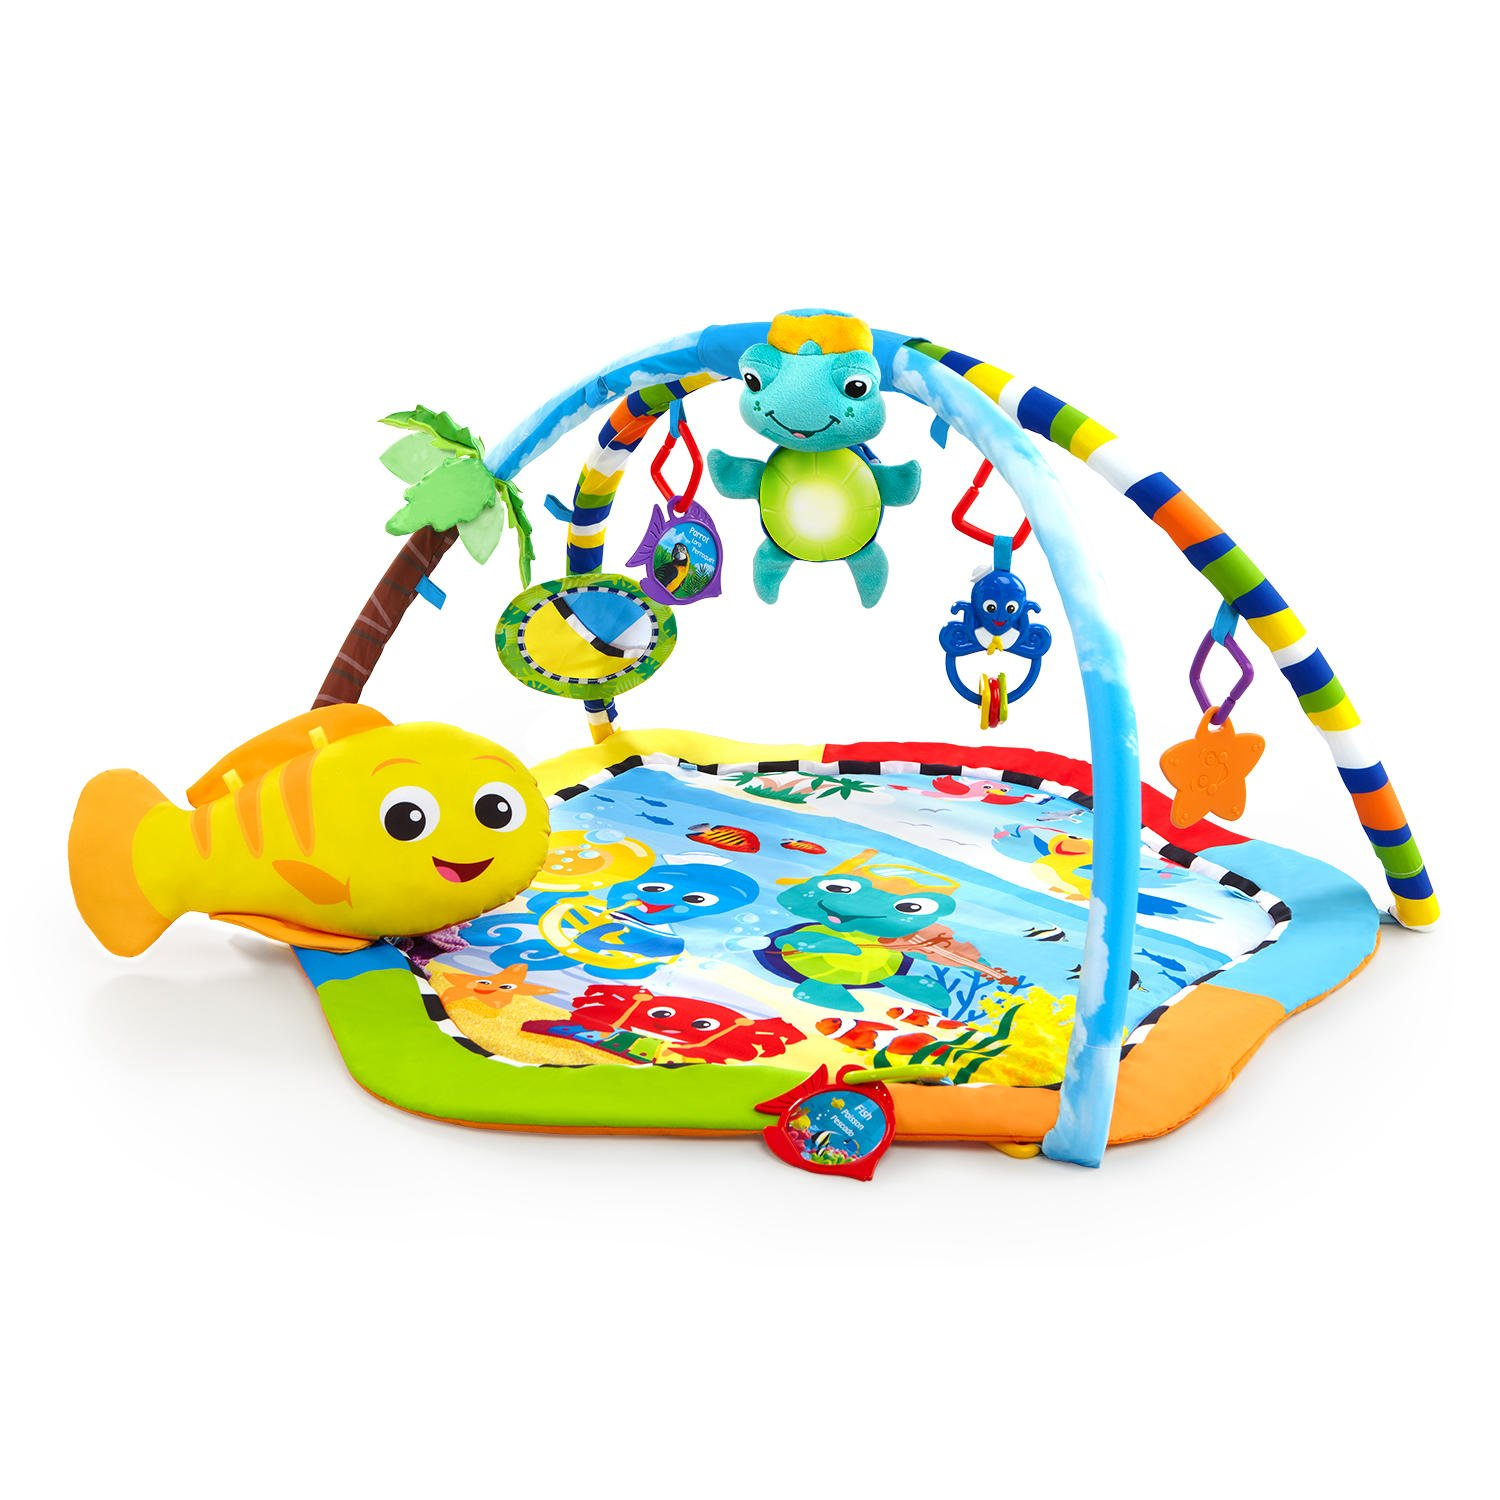 Baby Einstein Rhythm of the Reef Play Gym Kids II - (Carson CA) 90649-2